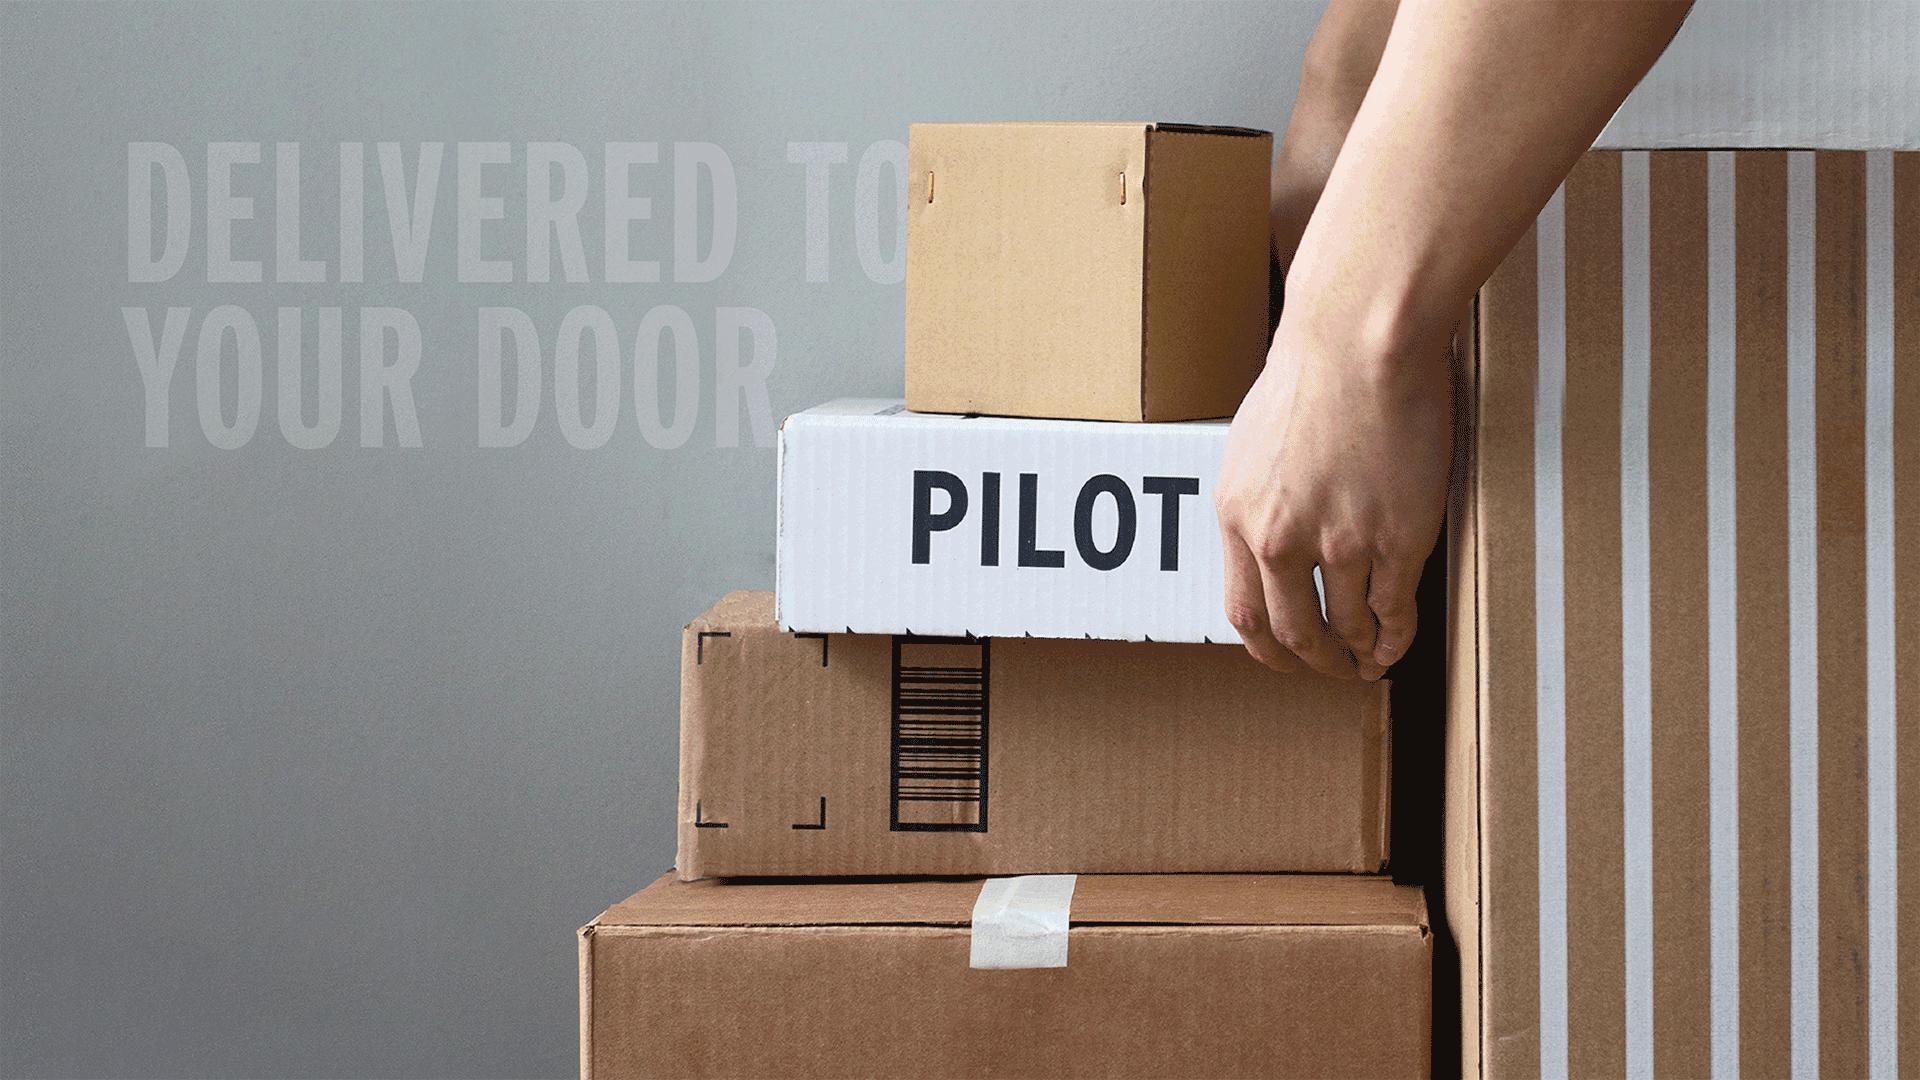 Win a six month Pilot Coffee subscription | Delivered to your door